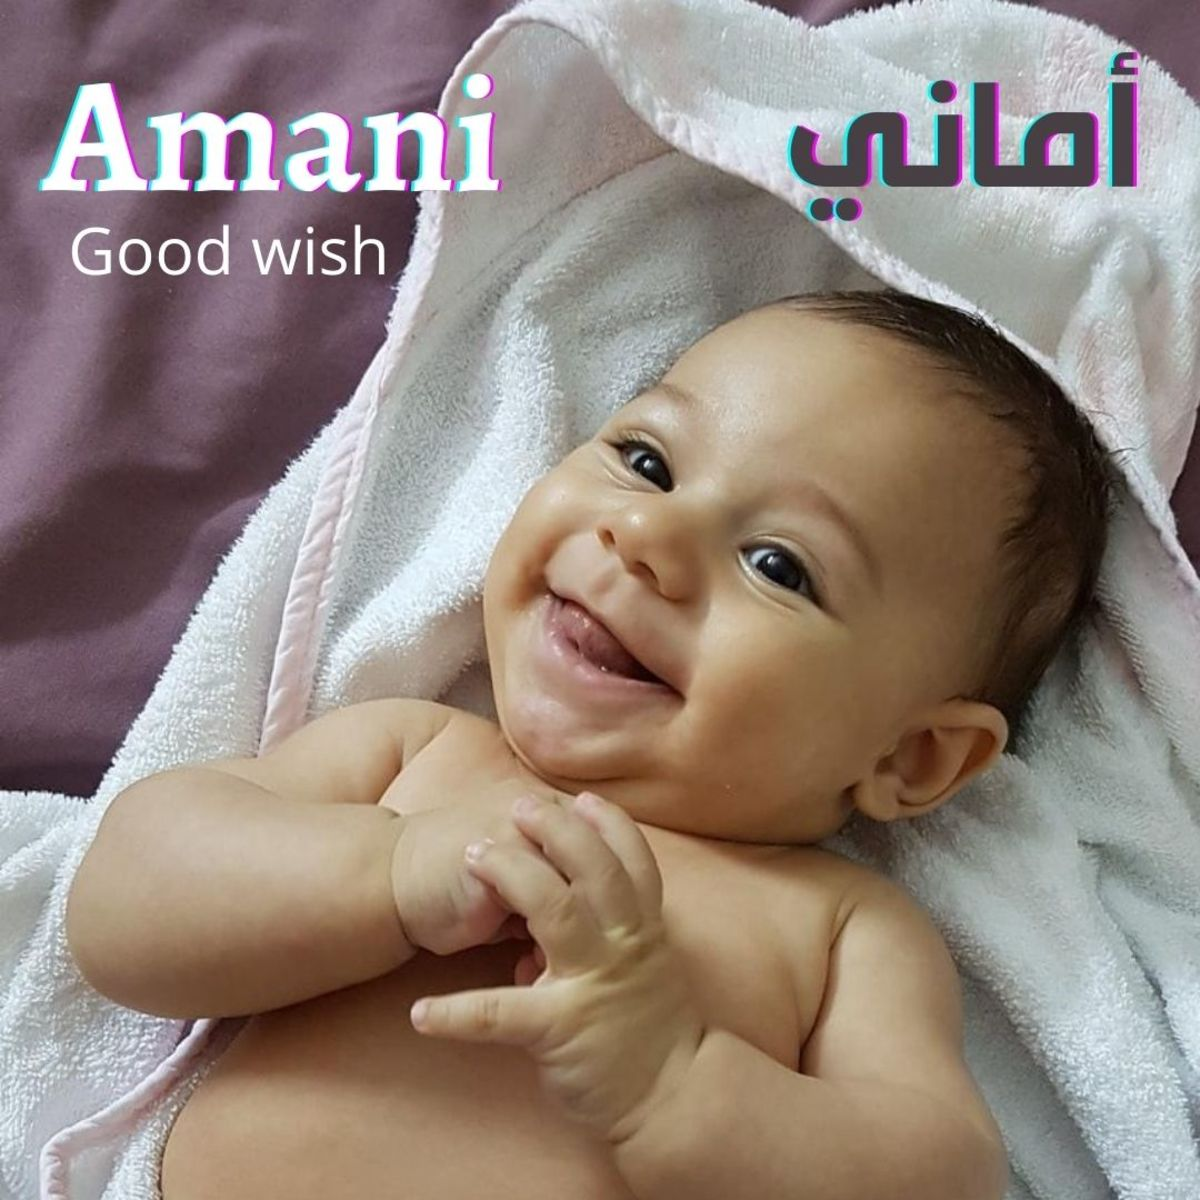 Amani means good wish or hope.